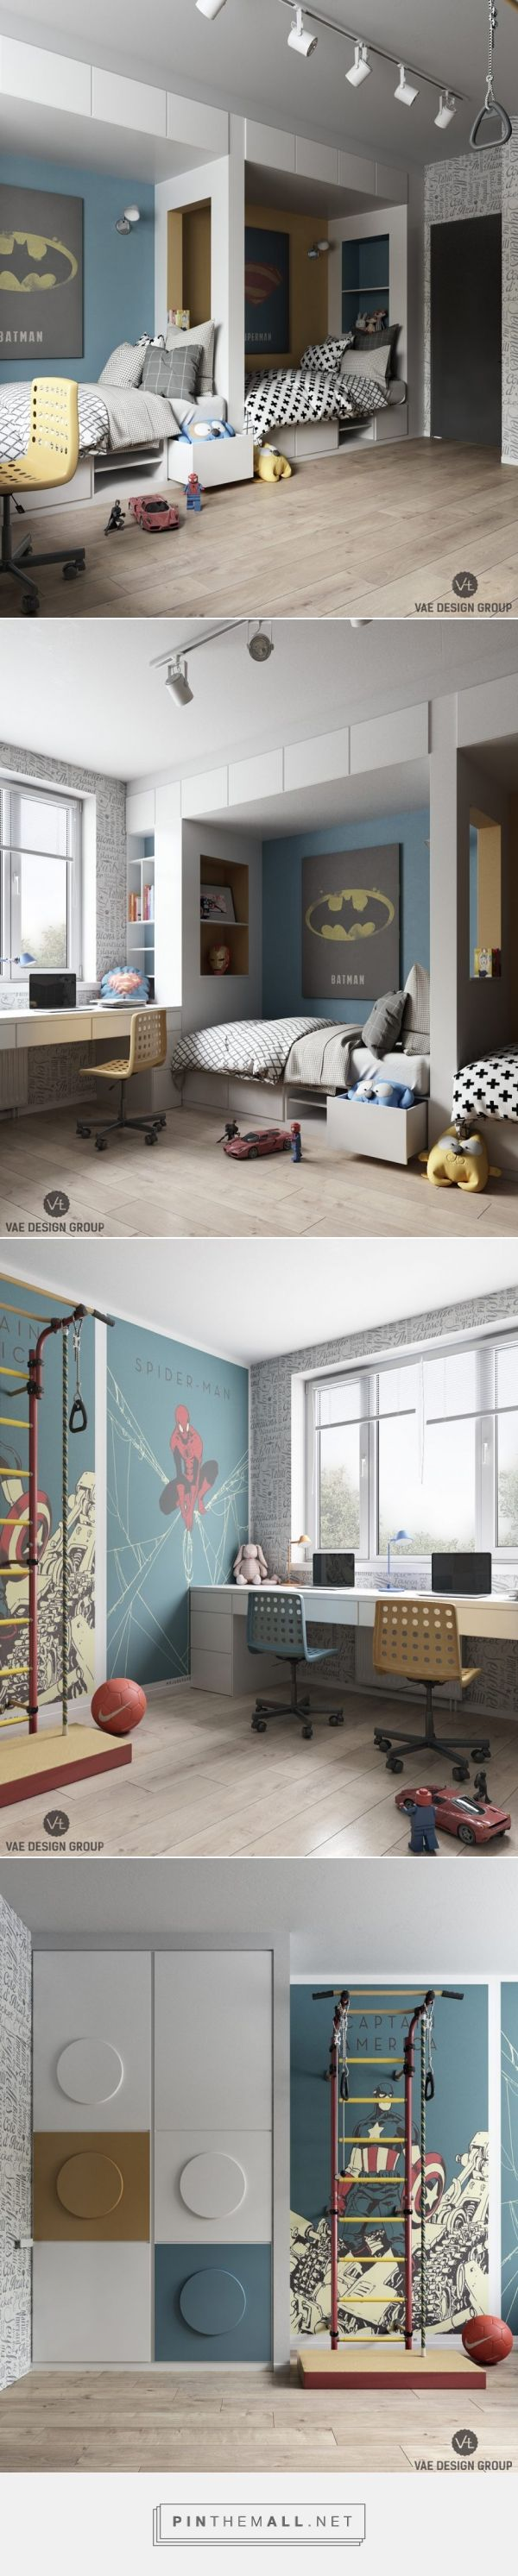 Superhelden Zimmer - Stil Fabrik - created via https://pinthemall.net